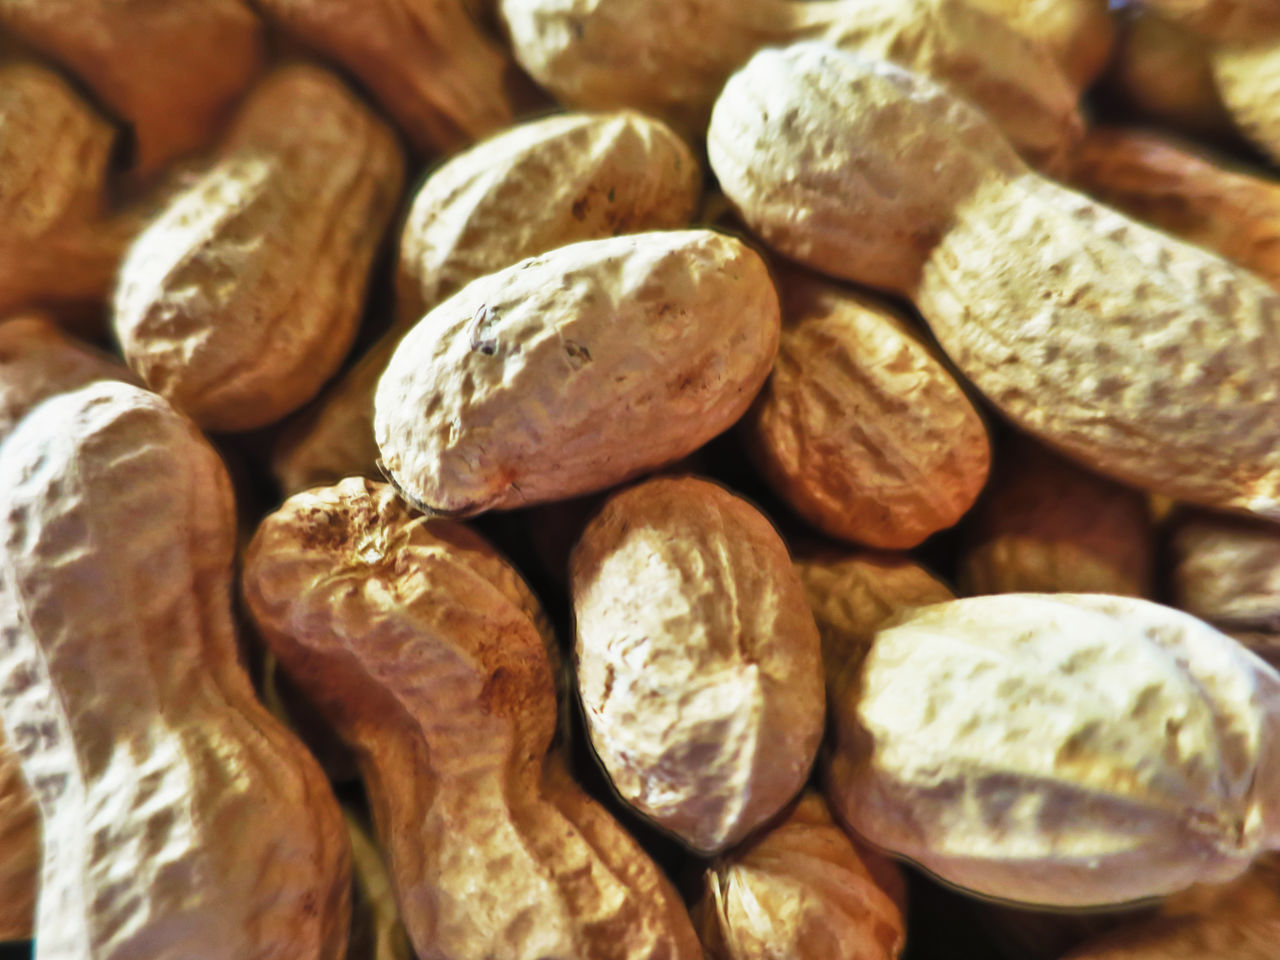 Dried peanuts peanuts Backgrounds Close-up Day Food Food And Drink Full Frame Healthy Eating Indoors  Large Group Of Objects No People Peanuts, Peanut, Peanuts, Dried, Dried Fruit, Close-up, Eating, Aperitif, Meal, Restaurant, Cultivation